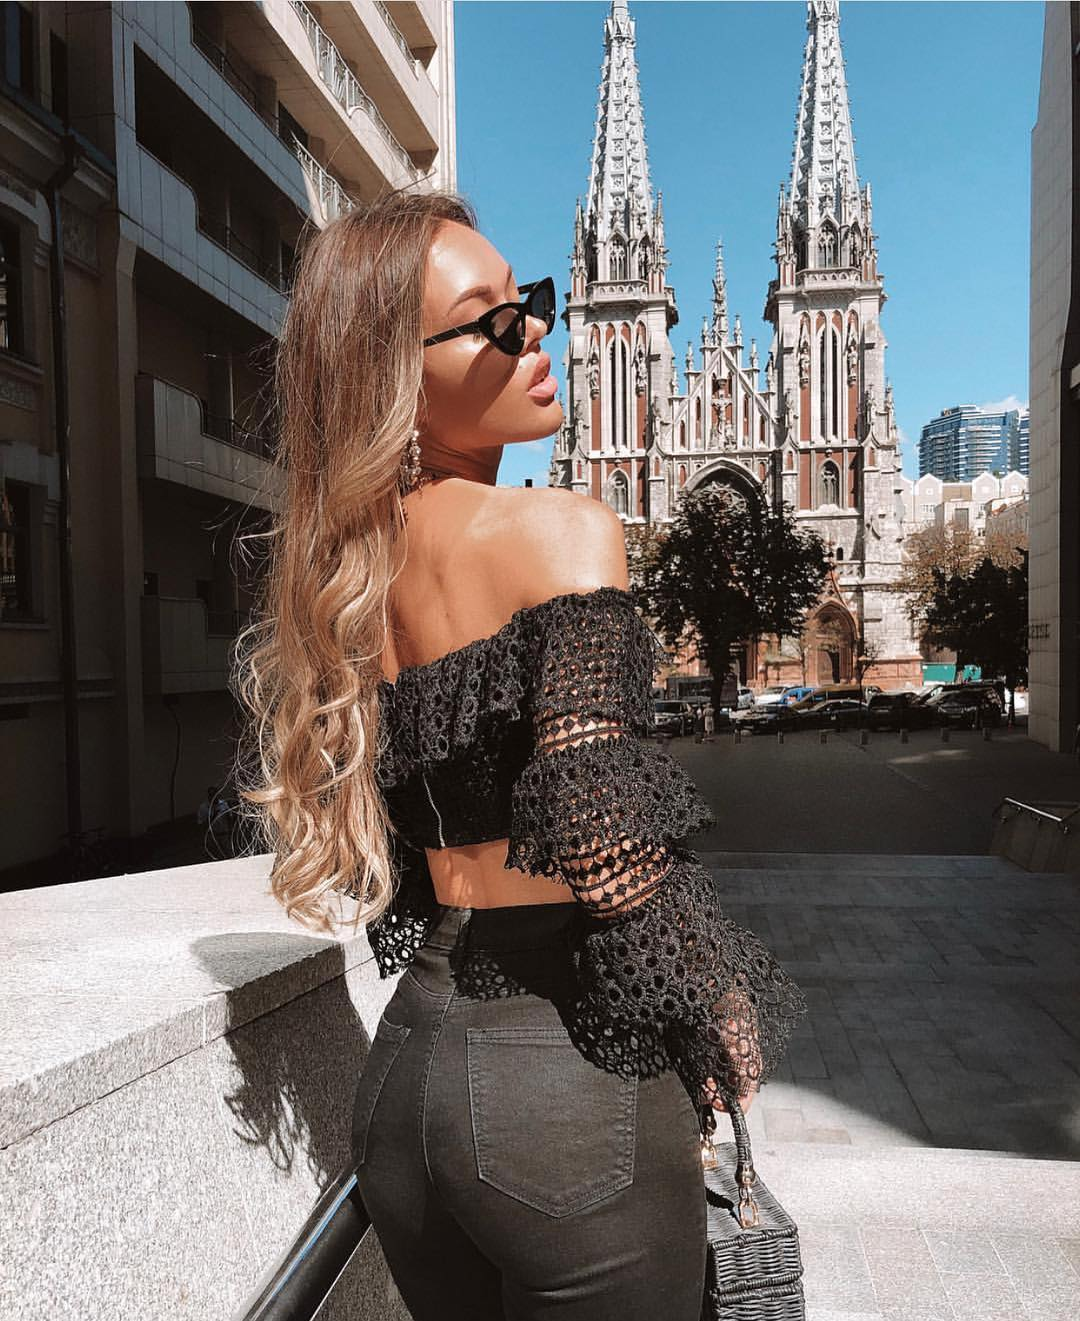 Off Shoulder Crochet Crop Top And Skinny Jeans All In Black For Summer 2019